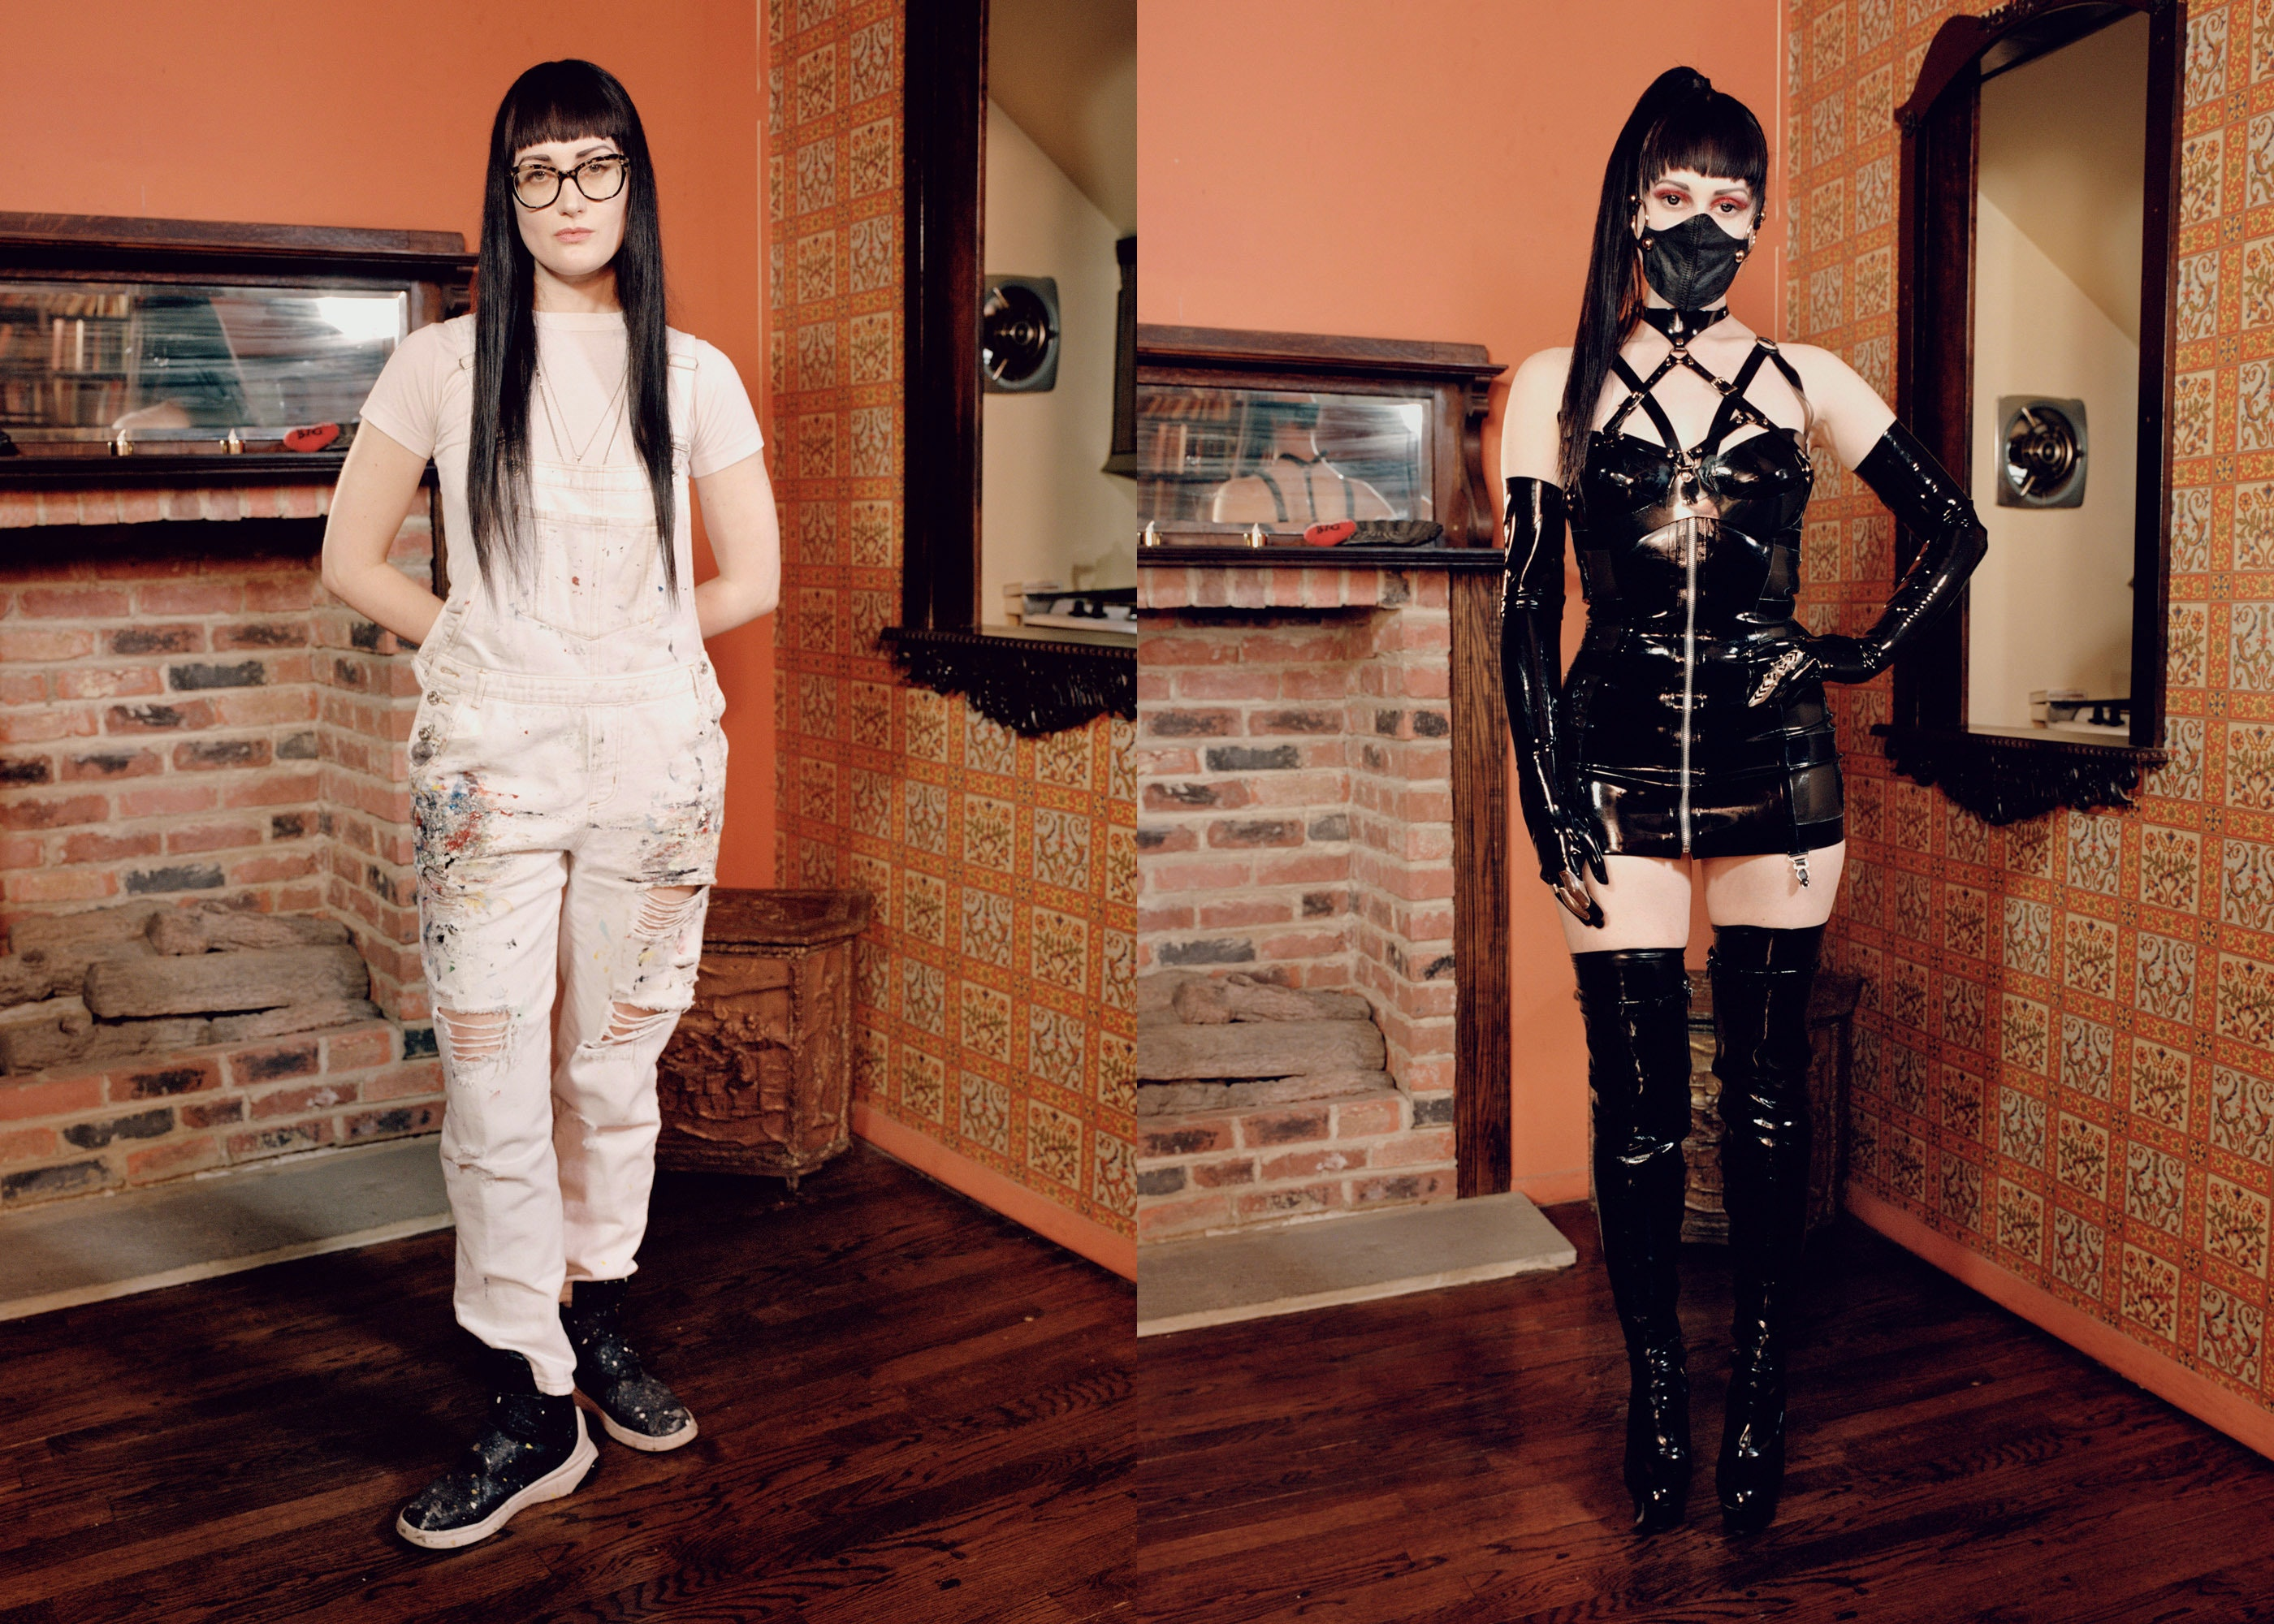 In bondage while wearing street clothes